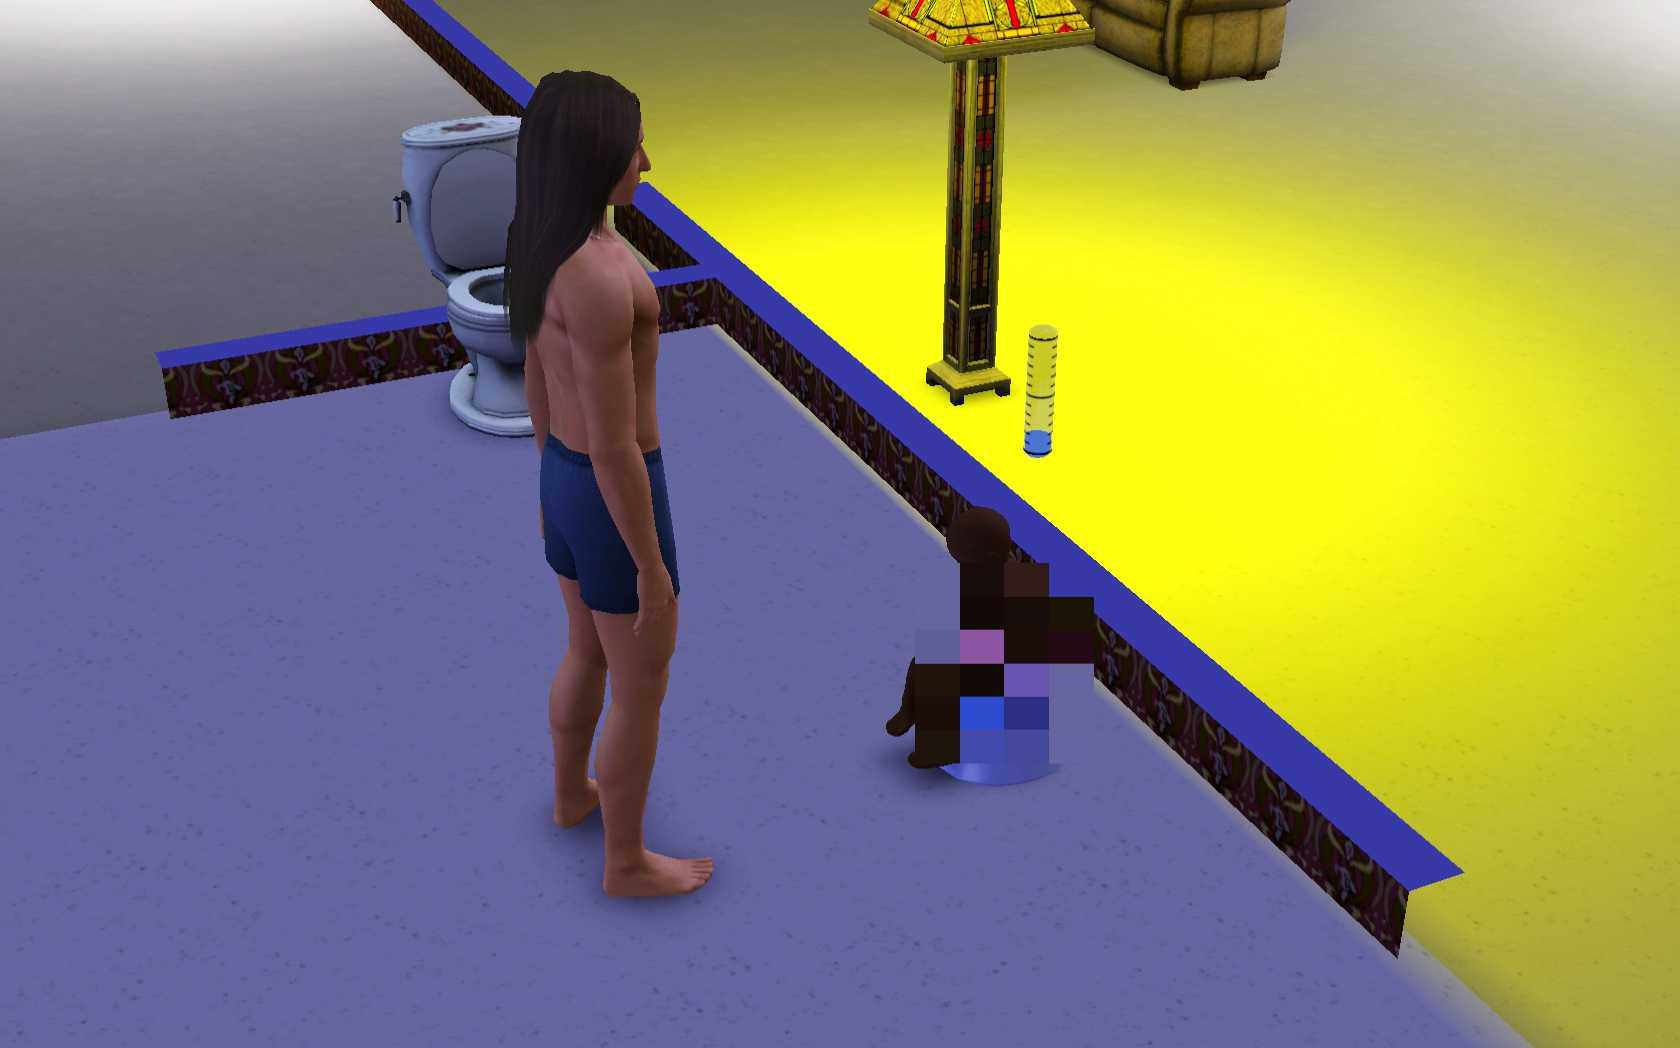 Sims 3 Parenting Potty training a toddler  The Sims 3 Baby and Toddler Guide. Sims Freeplay Baby Toilet